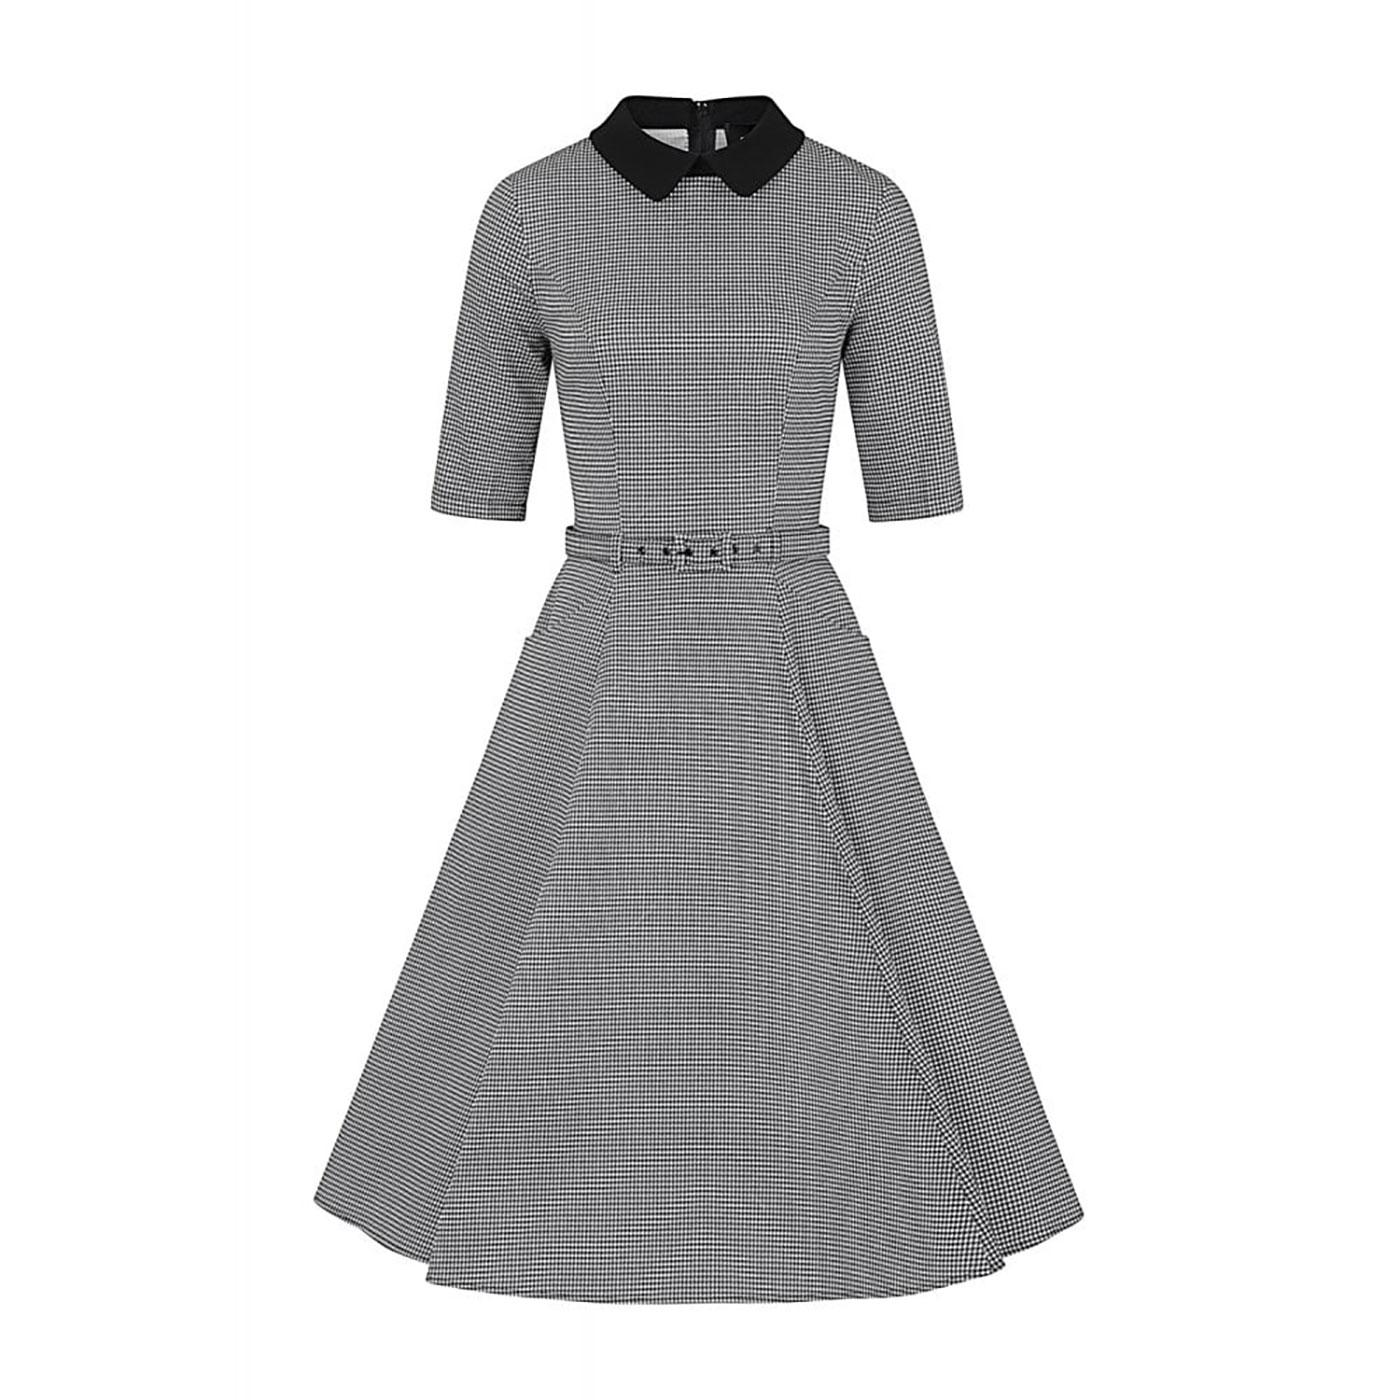 Winona COLLECTIF Houndstooth 1950s Swing Dress